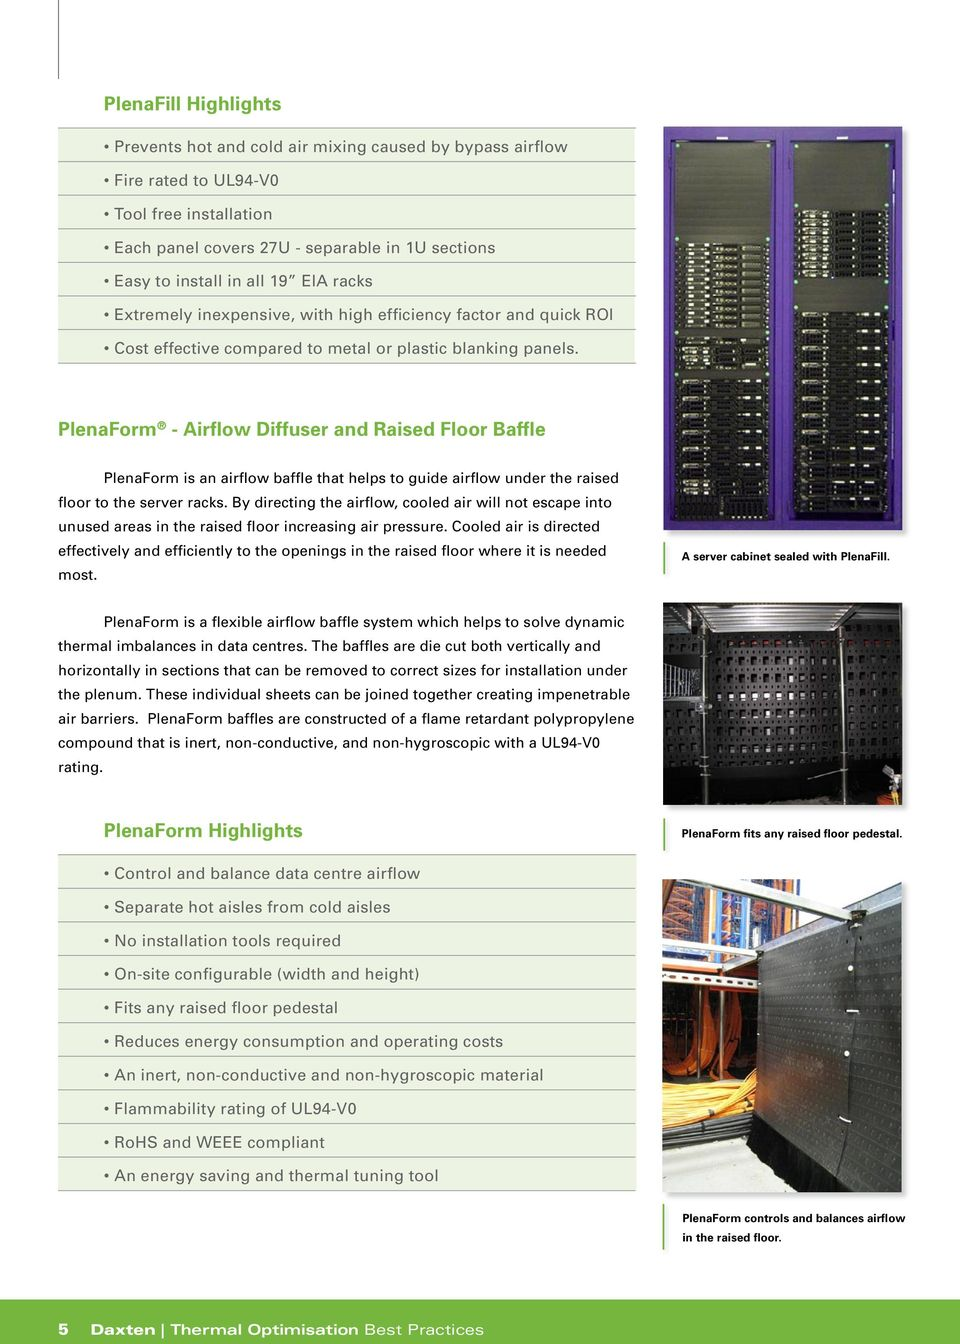 PlenaForm - Airflow Diffuser and Raised Floor Baffle PlenaForm is an airflow baffle that helps to guide airflow under the raised floor to the server racks.